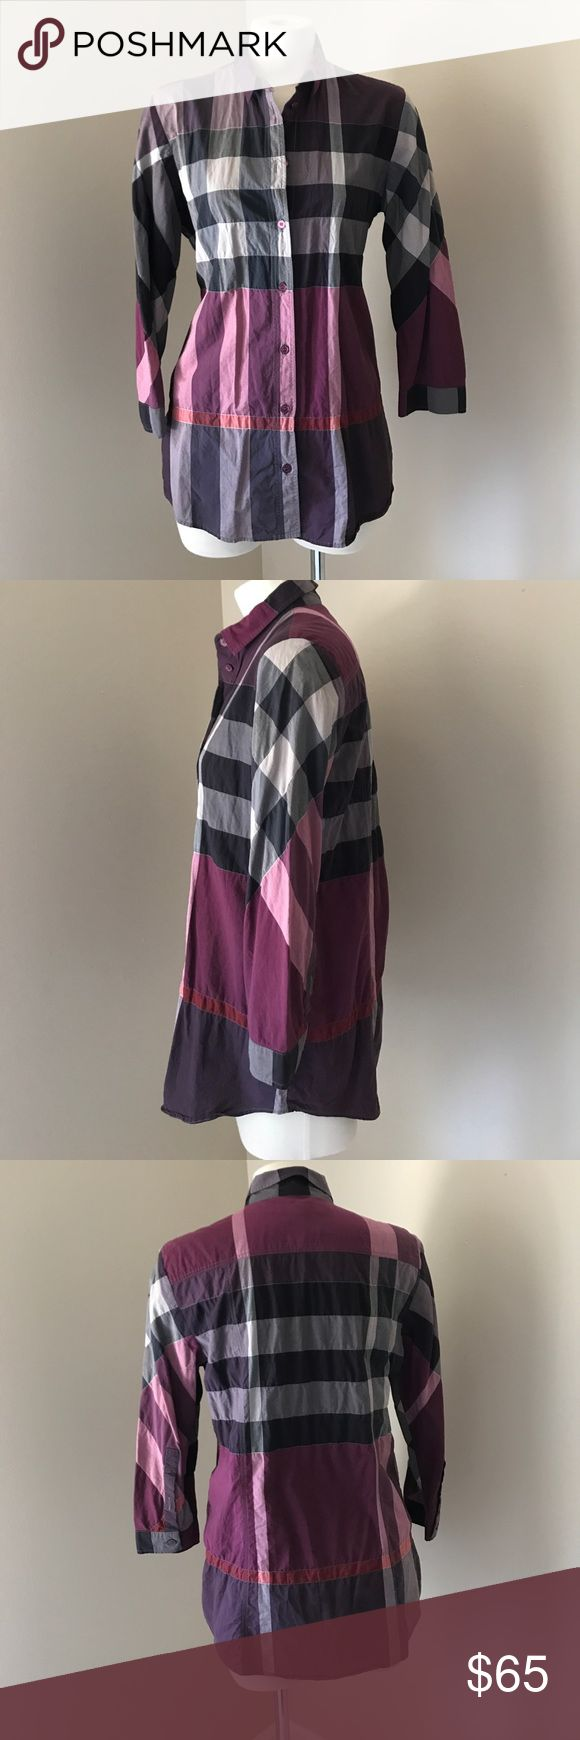 Burberry Plaid Button Down S Purple Burberry Plaid Button Down Blouse 3/4 sleeve Small Burberry Tops Button Down Shirts